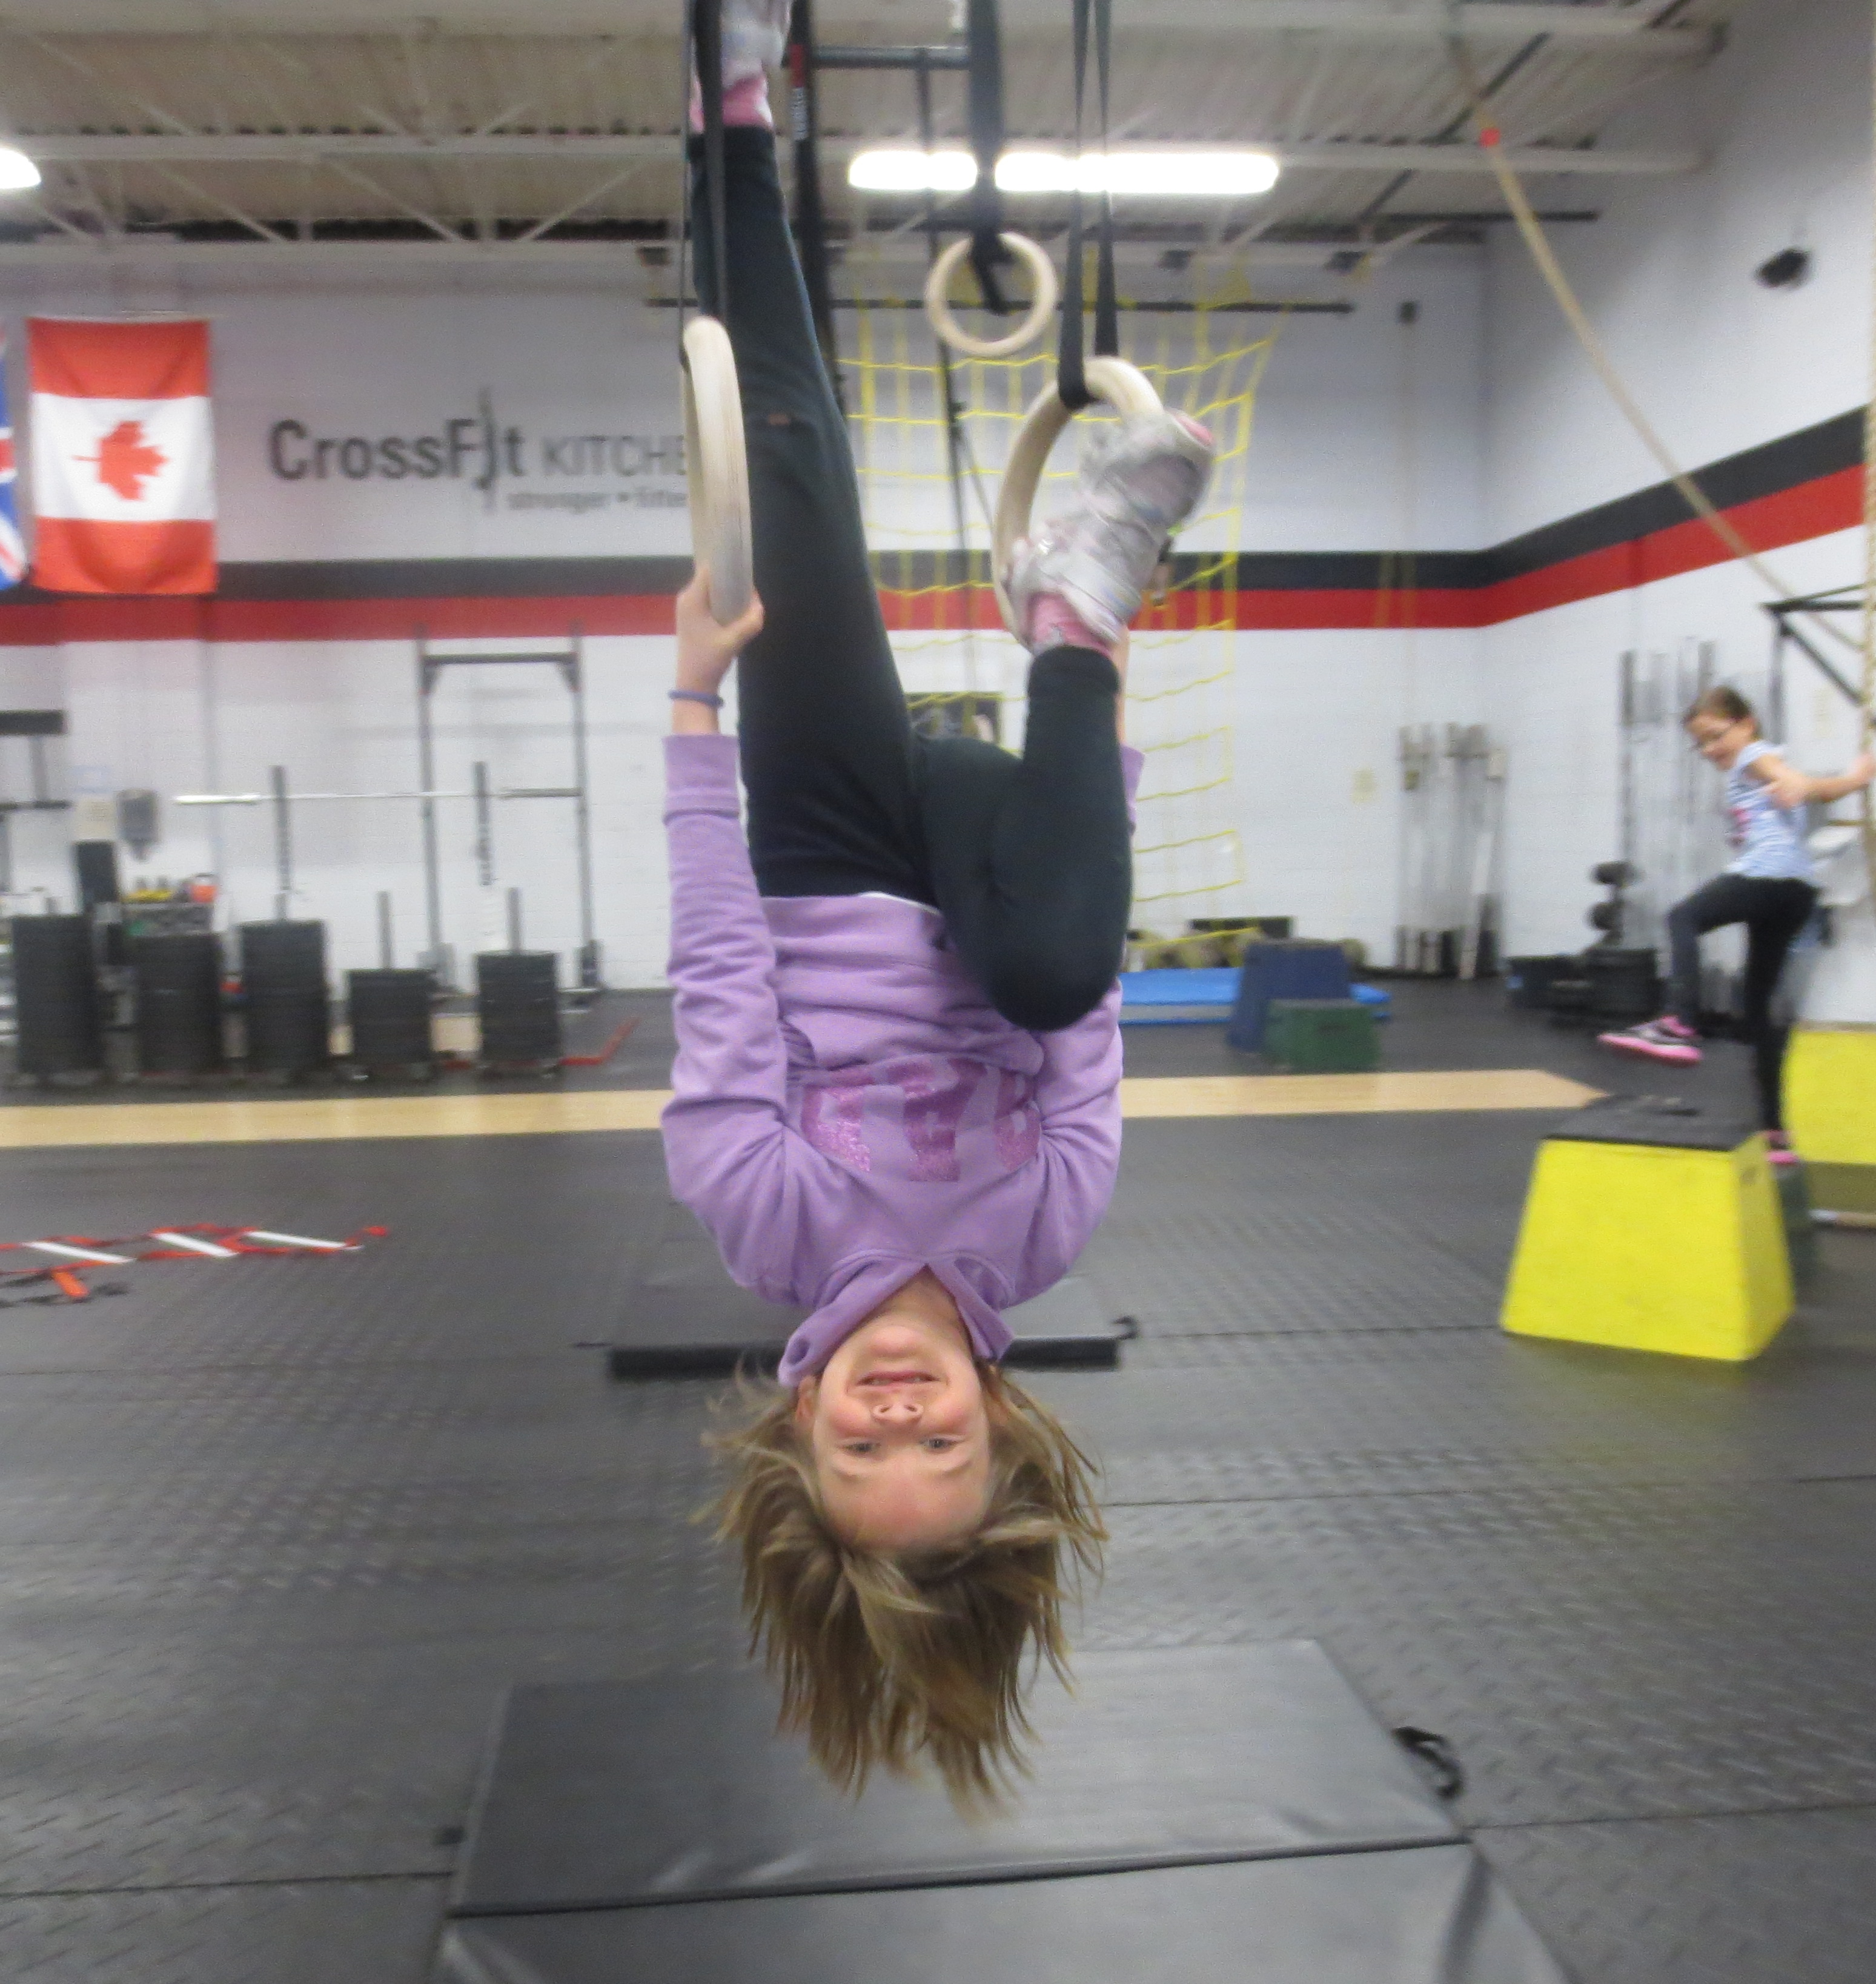 Birthday Parties At Crossfit Kitchener Testimonials